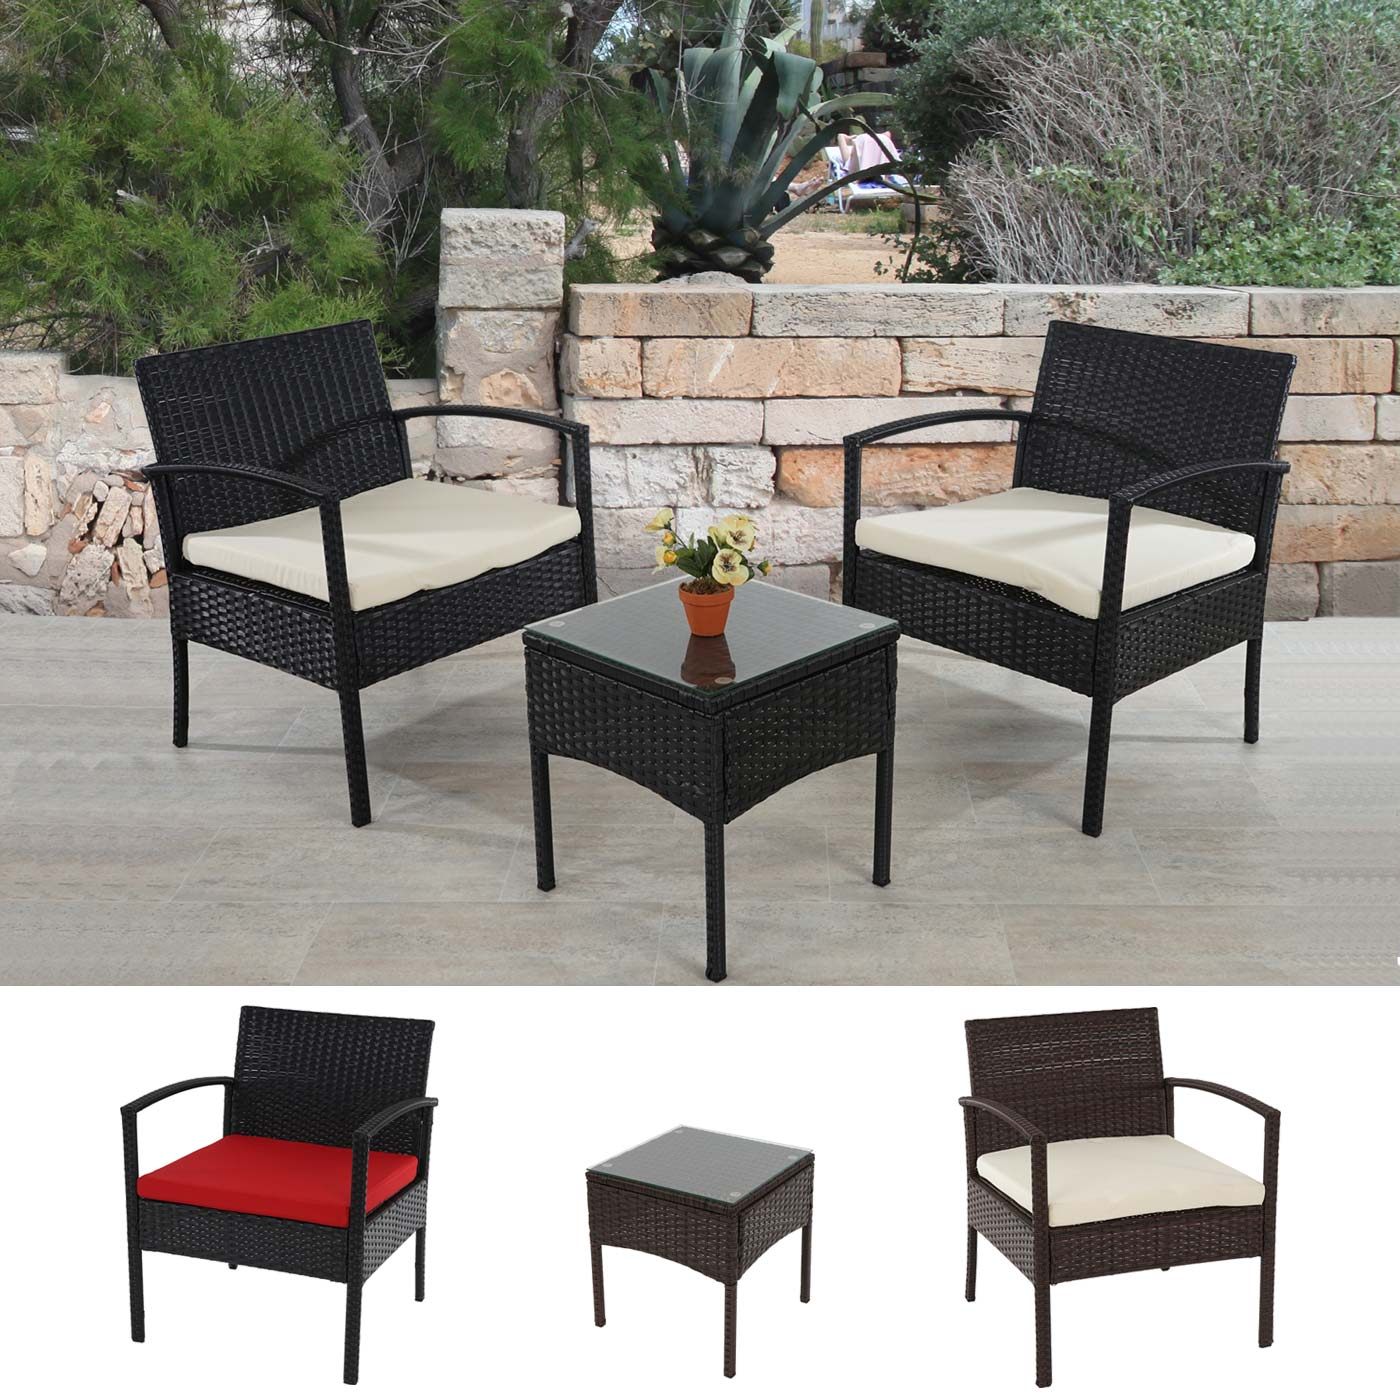 Poly rattan lounge set rimini garten garnitur anthrazit braun meliert ebay for Lounge garnitur garten